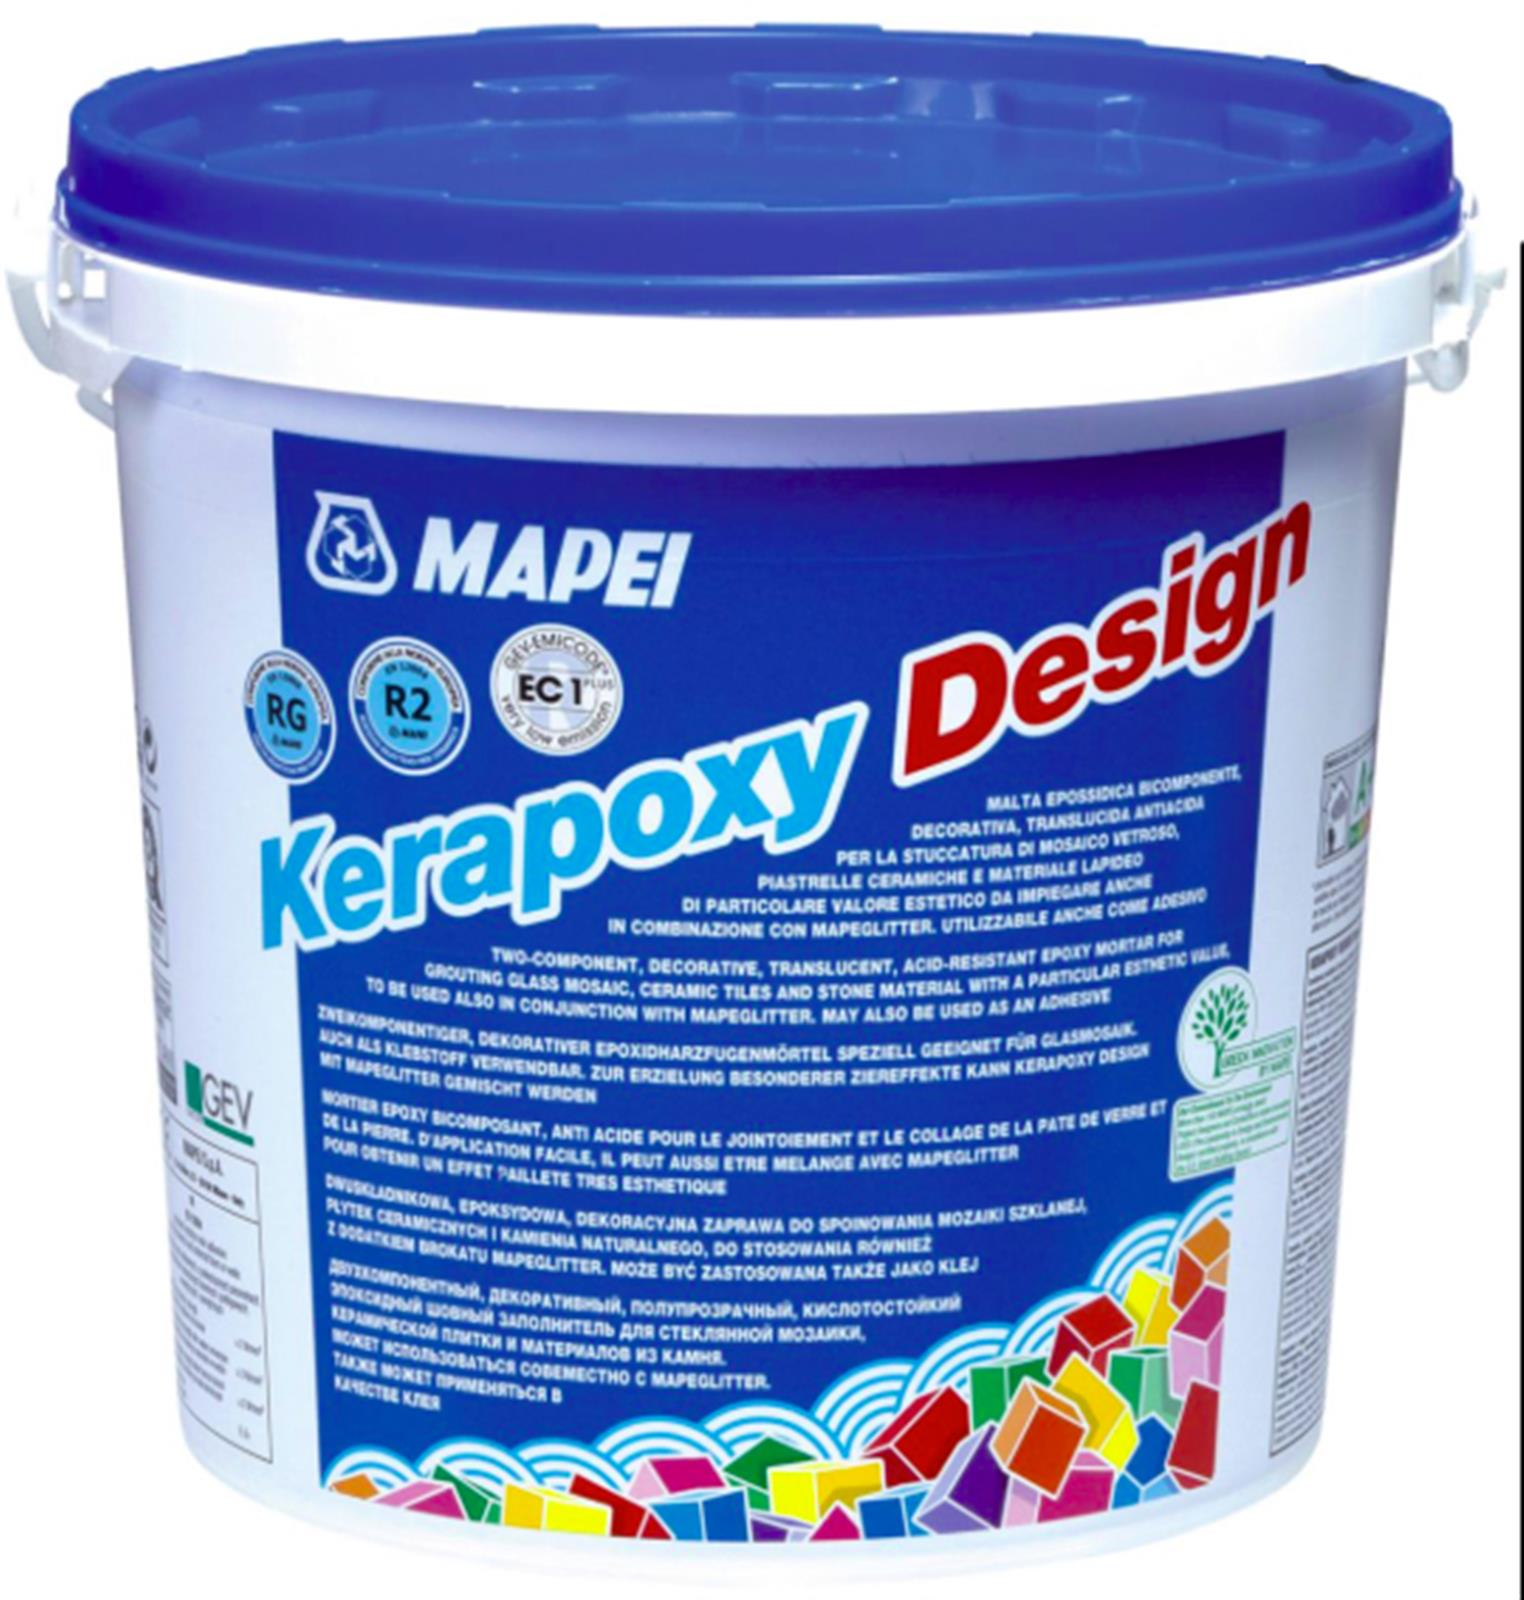 Mortier colle pour carrelage kit kerapoxy design mapei for Carrelage qui colle